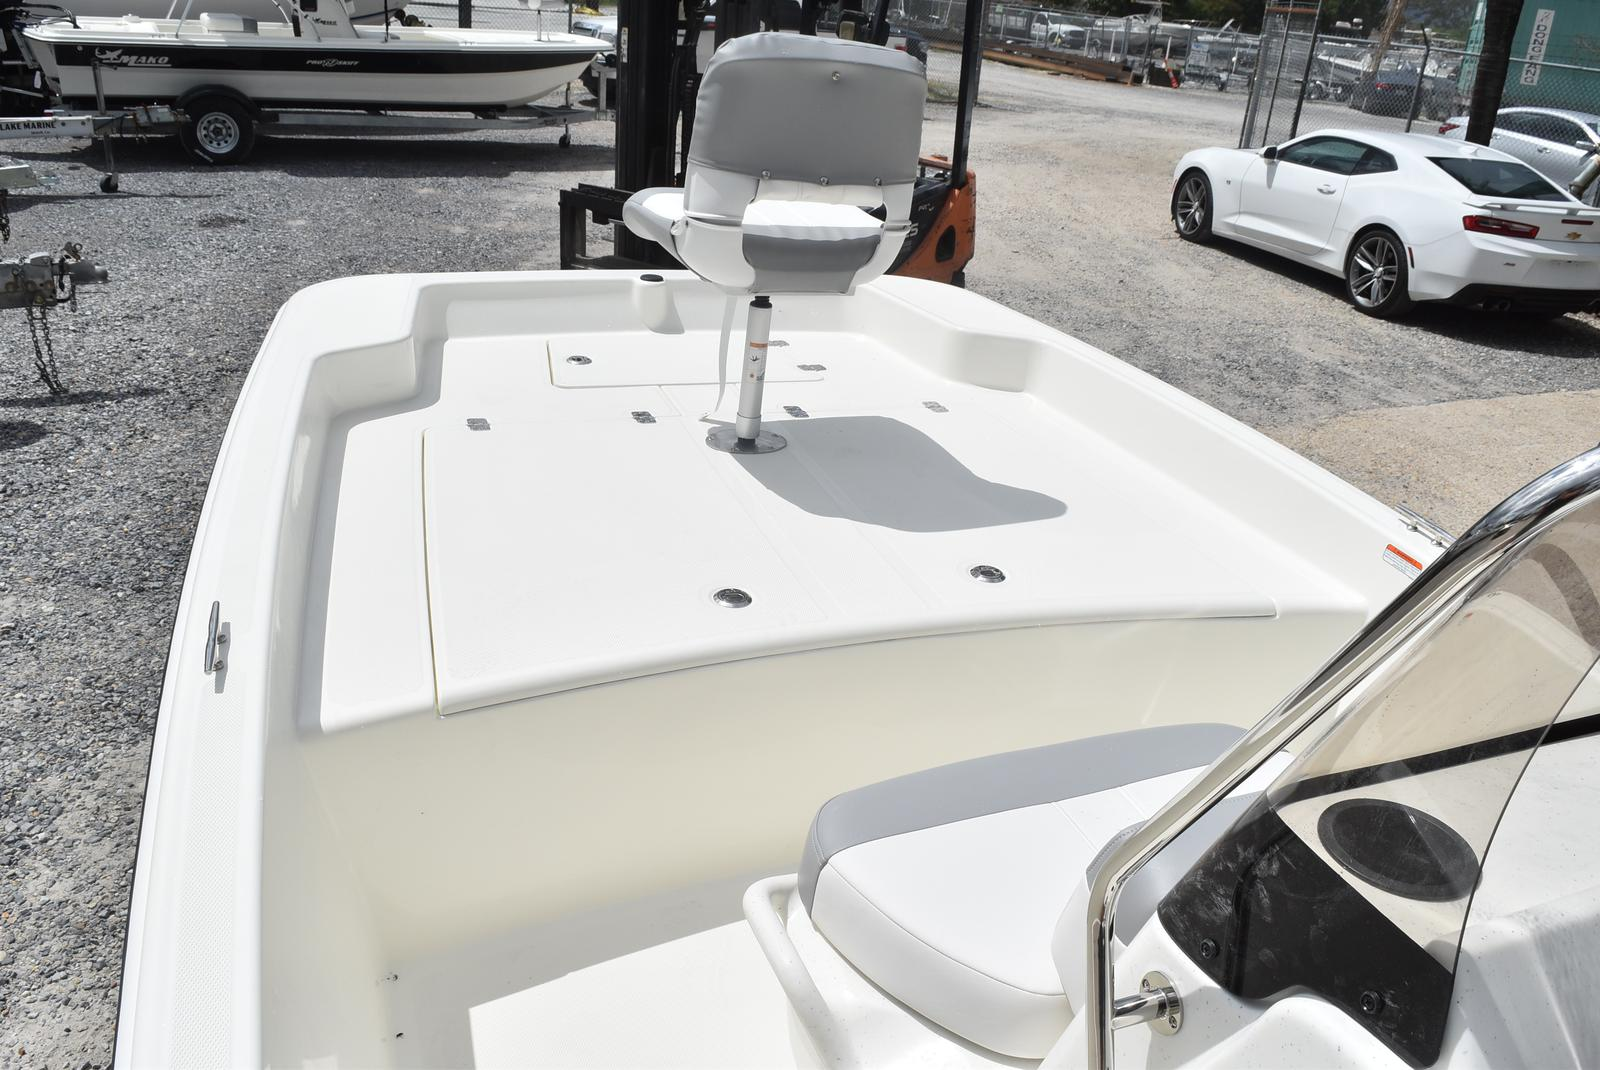 2020 Mako boat for sale, model of the boat is Pro Skiff 17, 75 ELPT & Image # 458 of 702